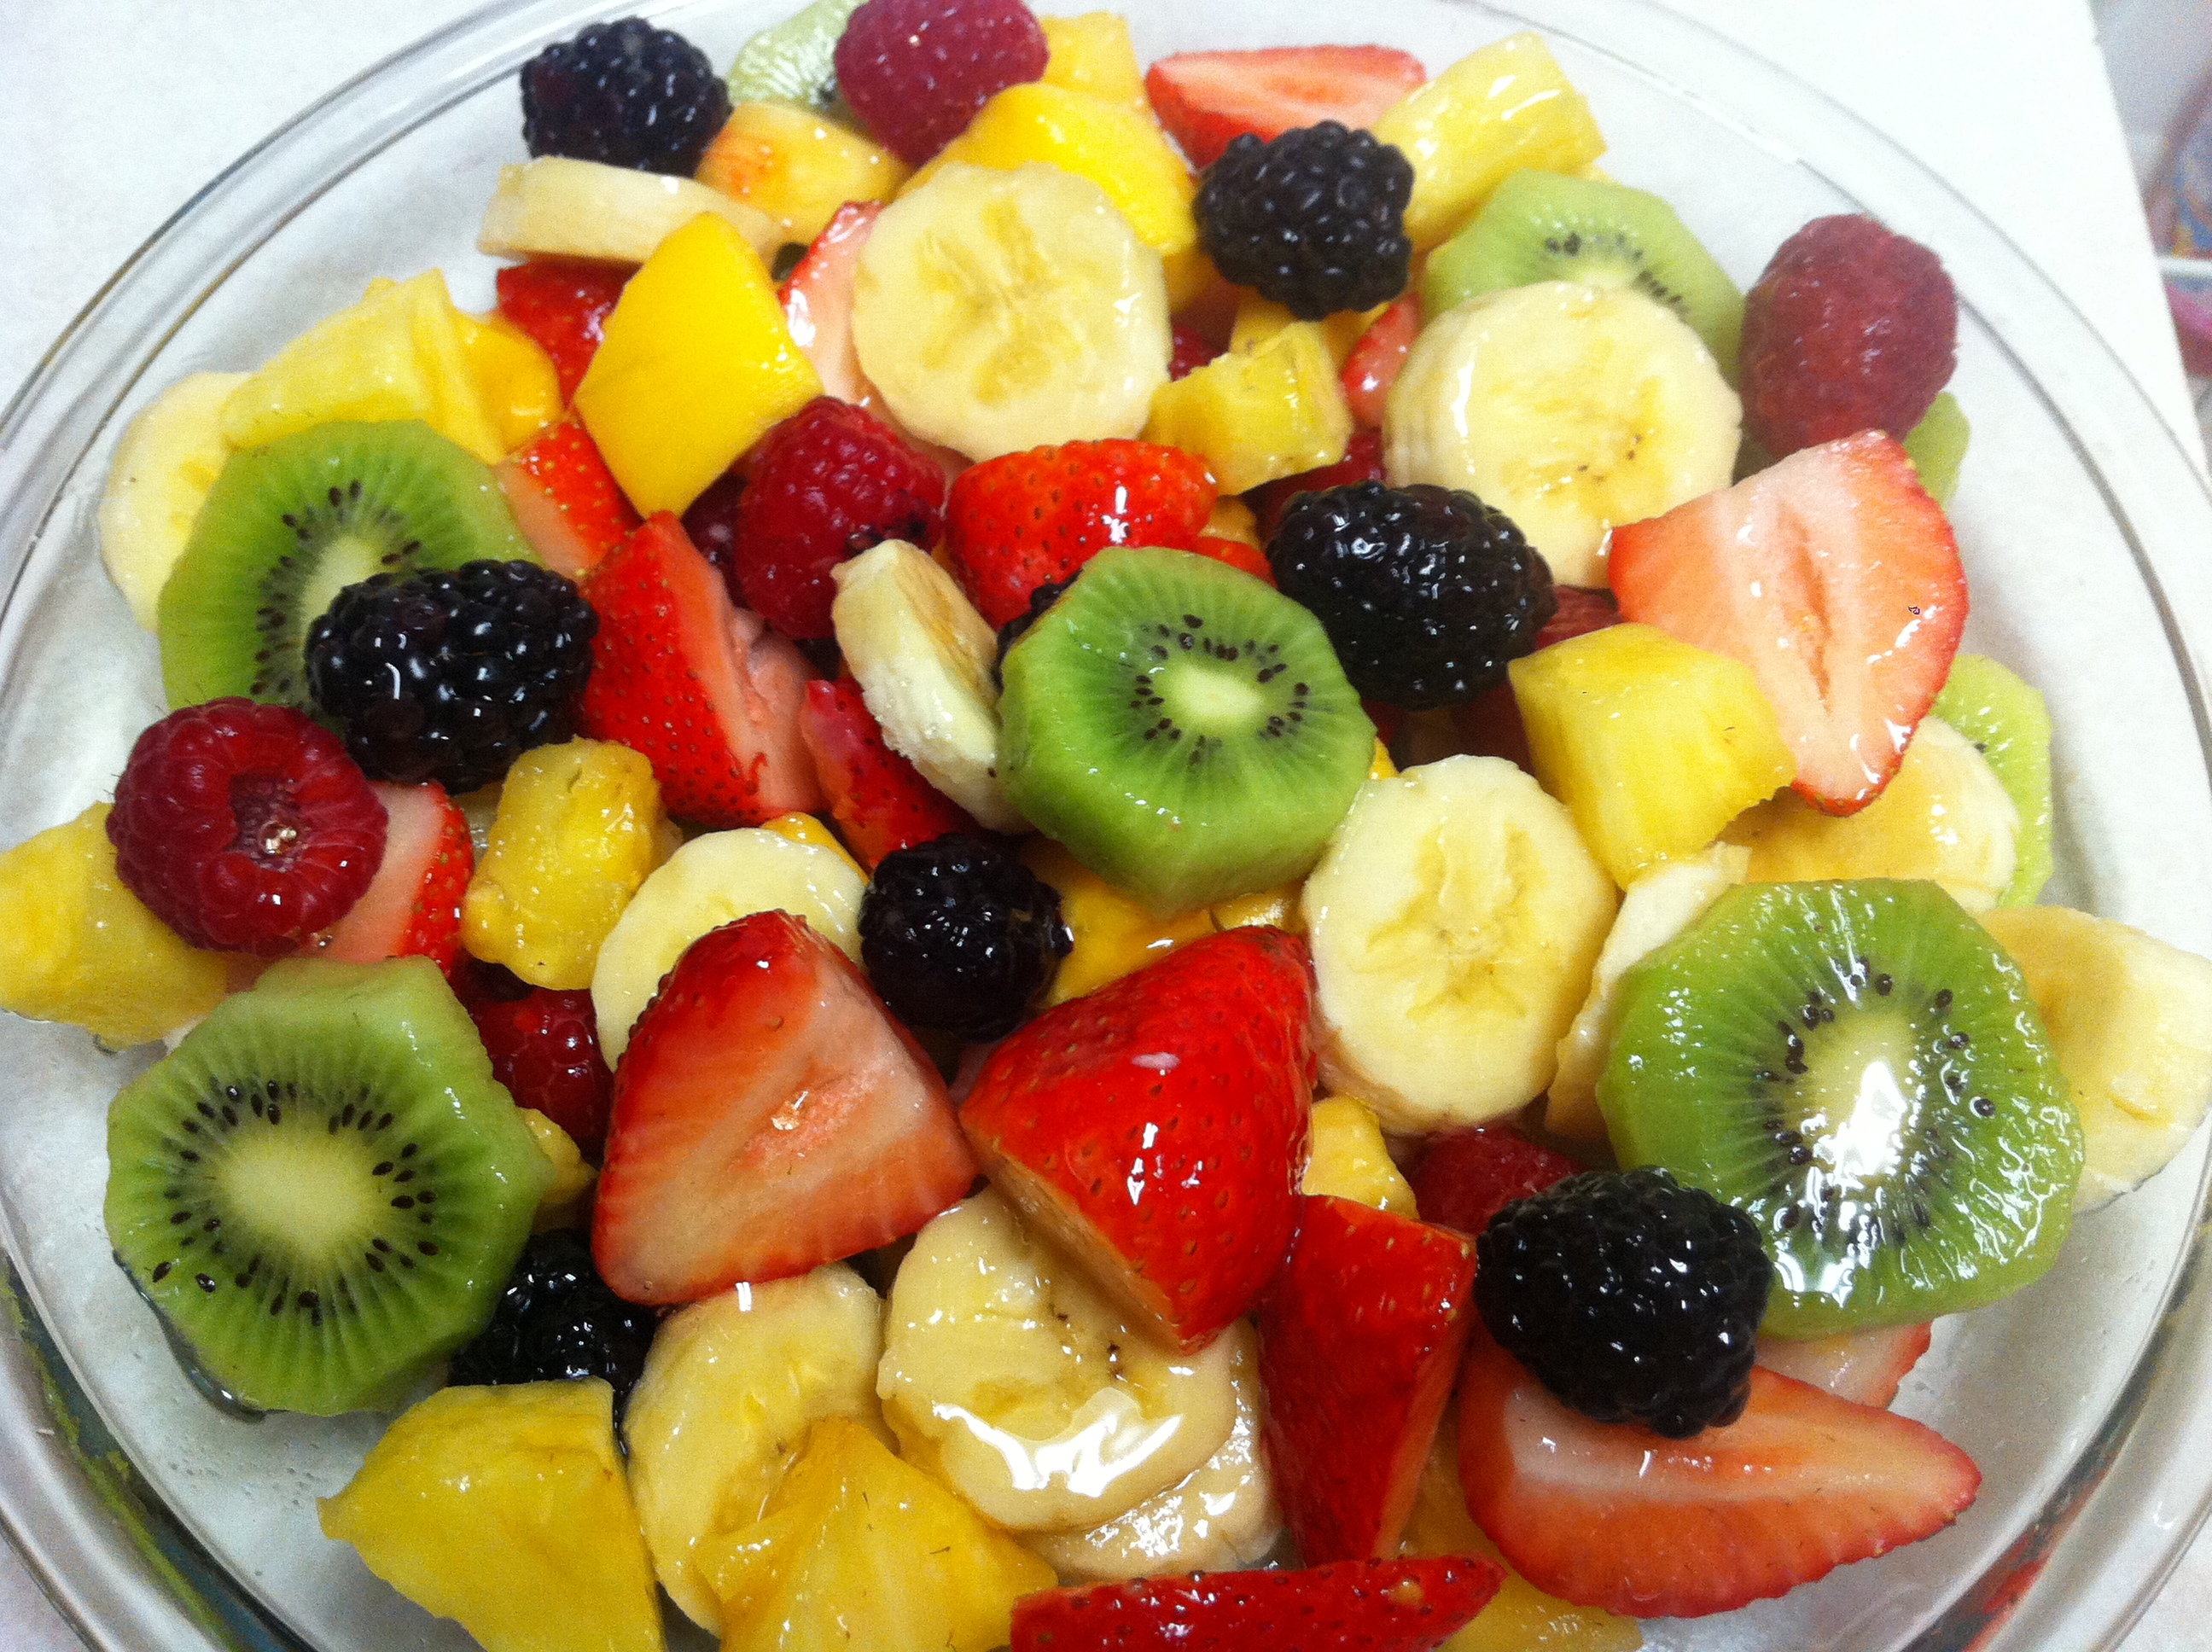 fruits with vitamin c make ahead fruit salad